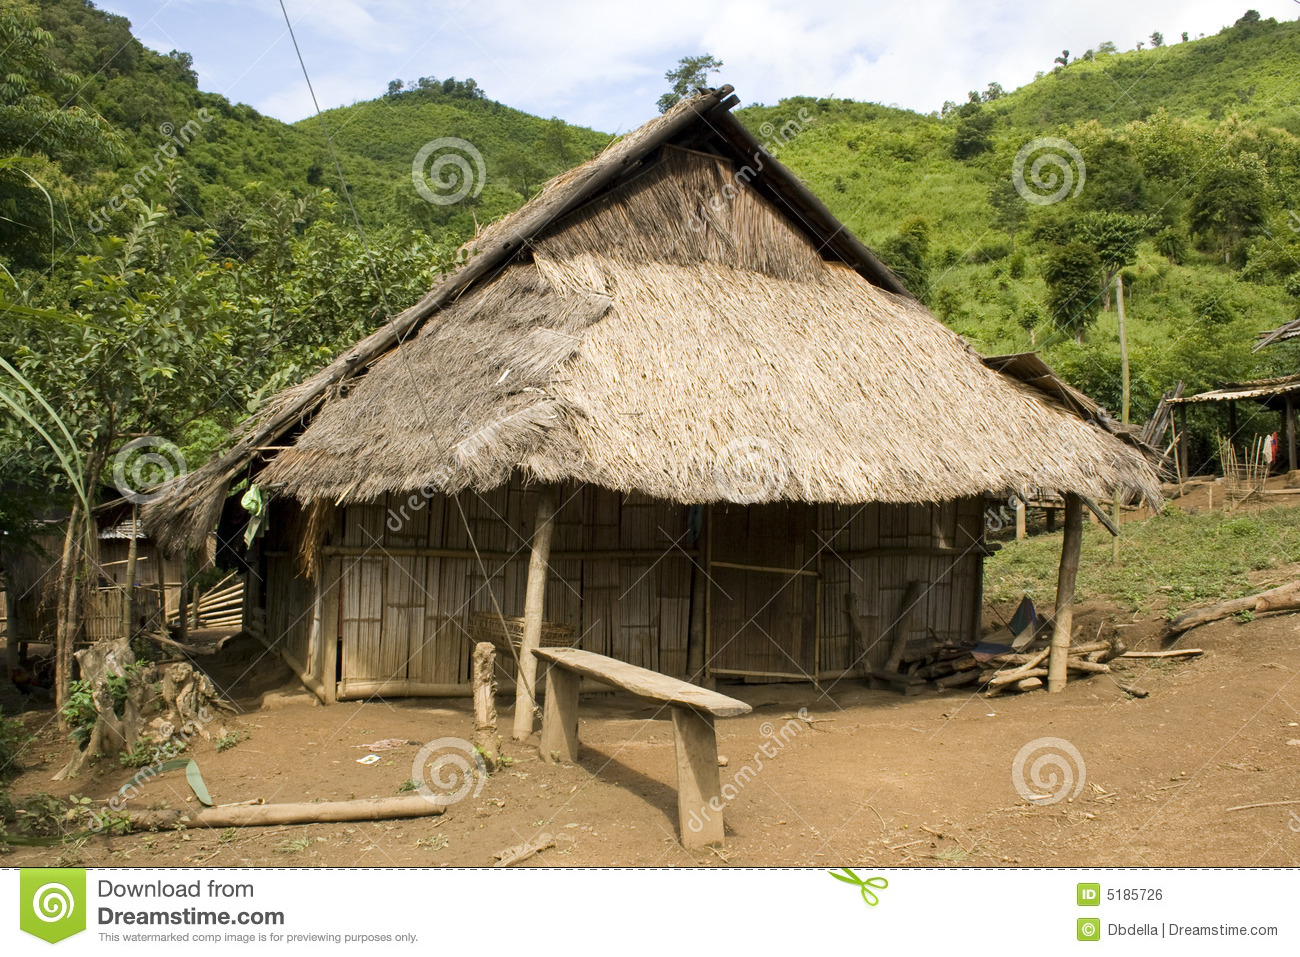 A Hmong hill tribe village in northern Laos.